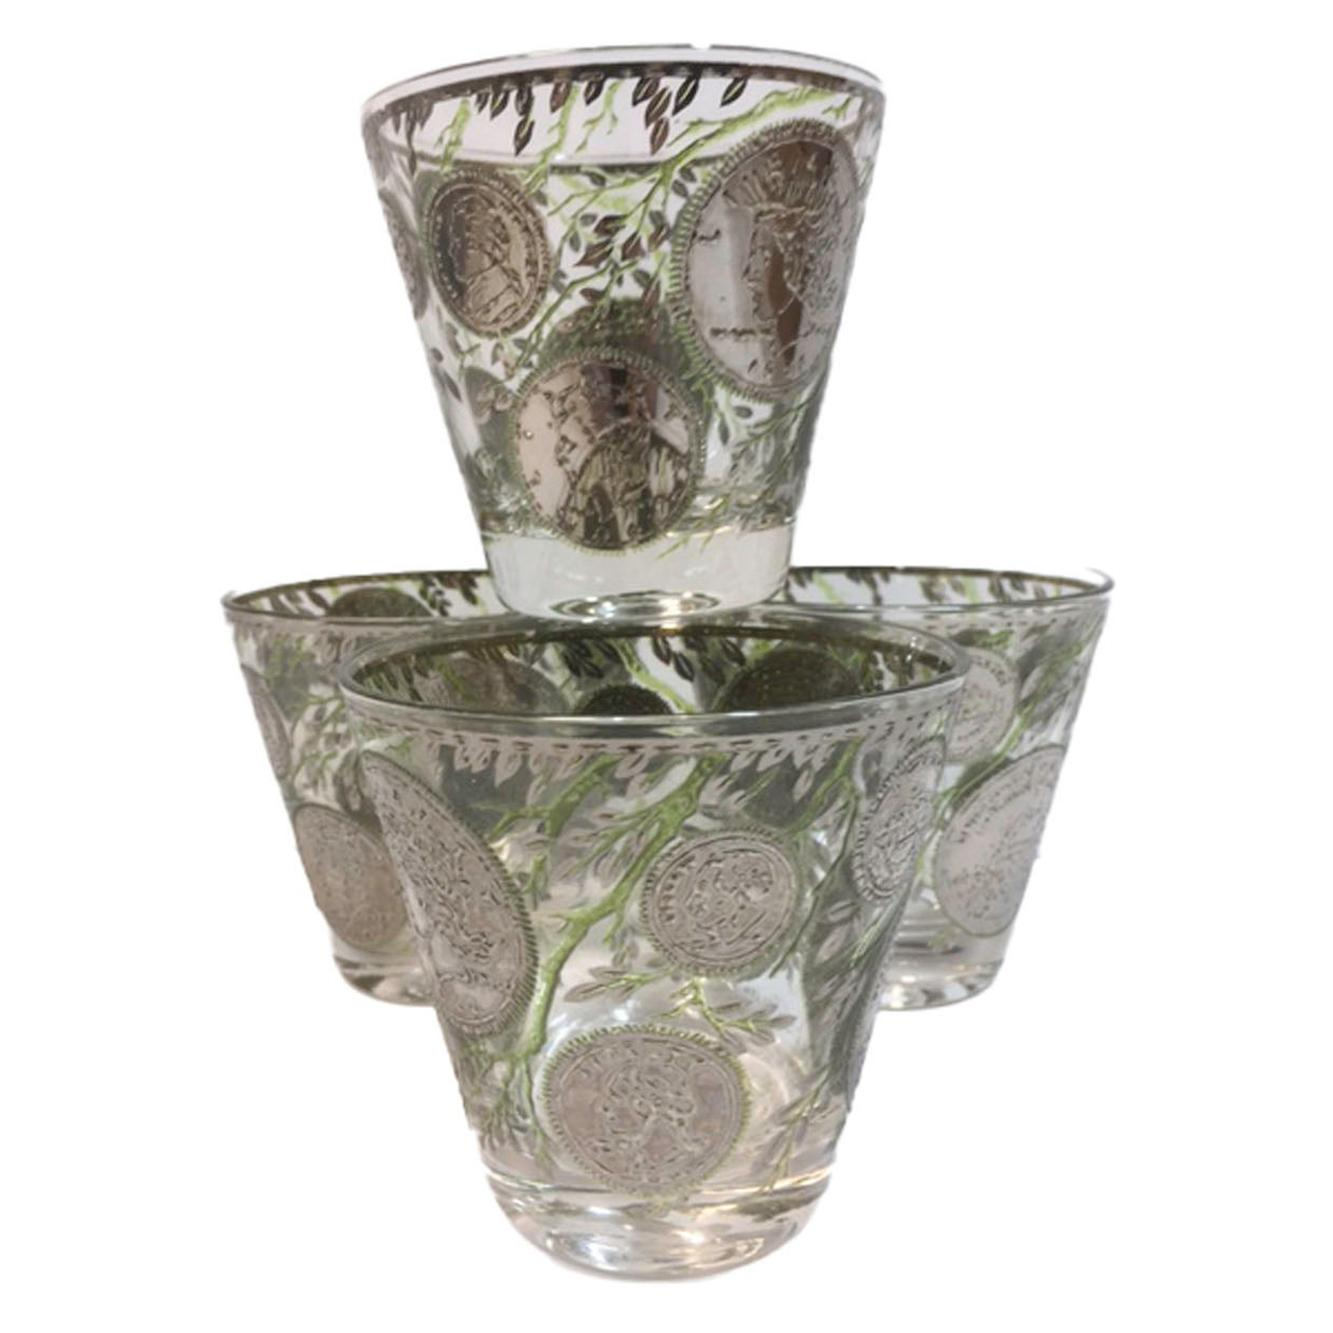 """Vintage Culver Old Fashioned Glasses in Silver """"Midas"""" Pattern"""